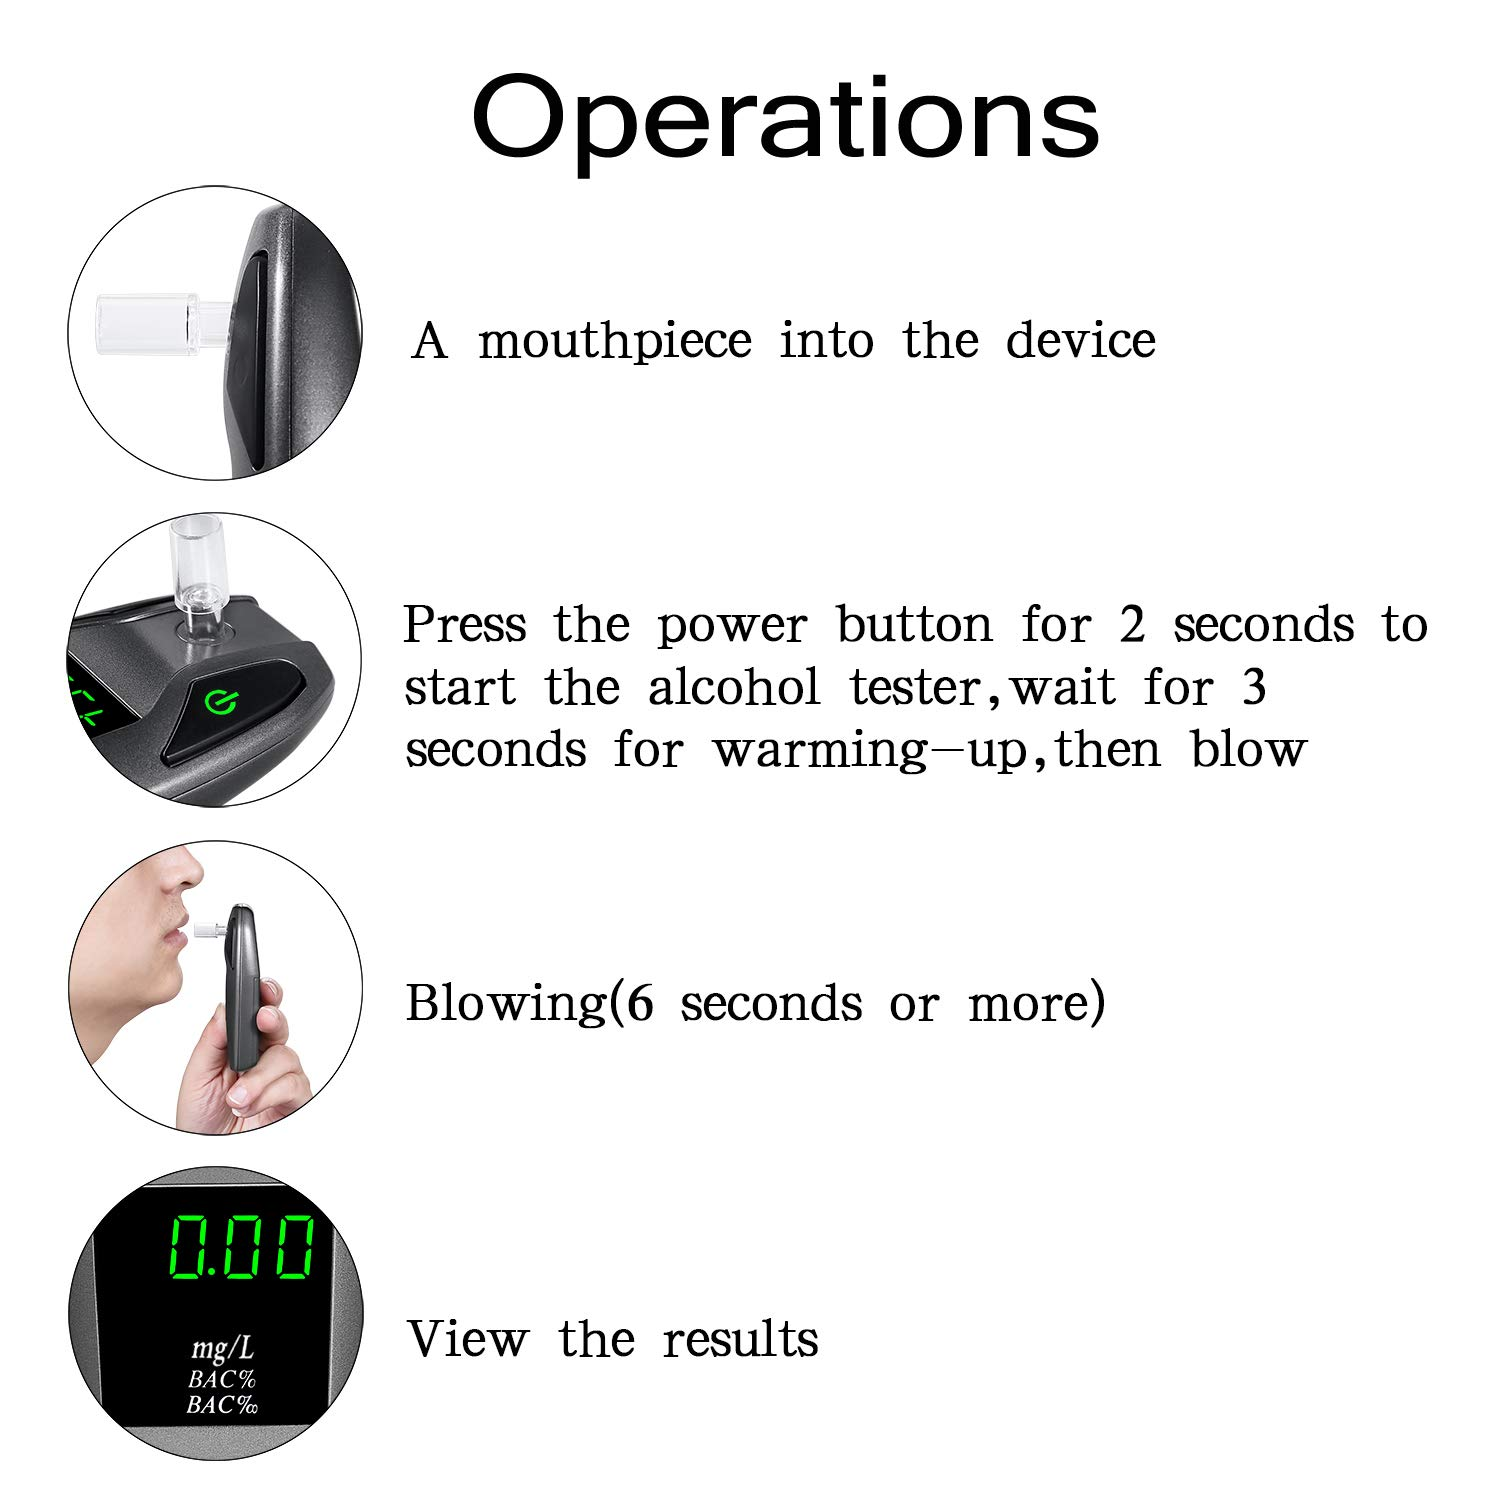 JASTEK Breathalyzer, [2019 New Version] Fuel Cell Sensor Digital Breath Alcohol Tester and Professional Grade Blood Alcohol Content Detector Made of Zinc Alloy by JASTEK (Image #7)